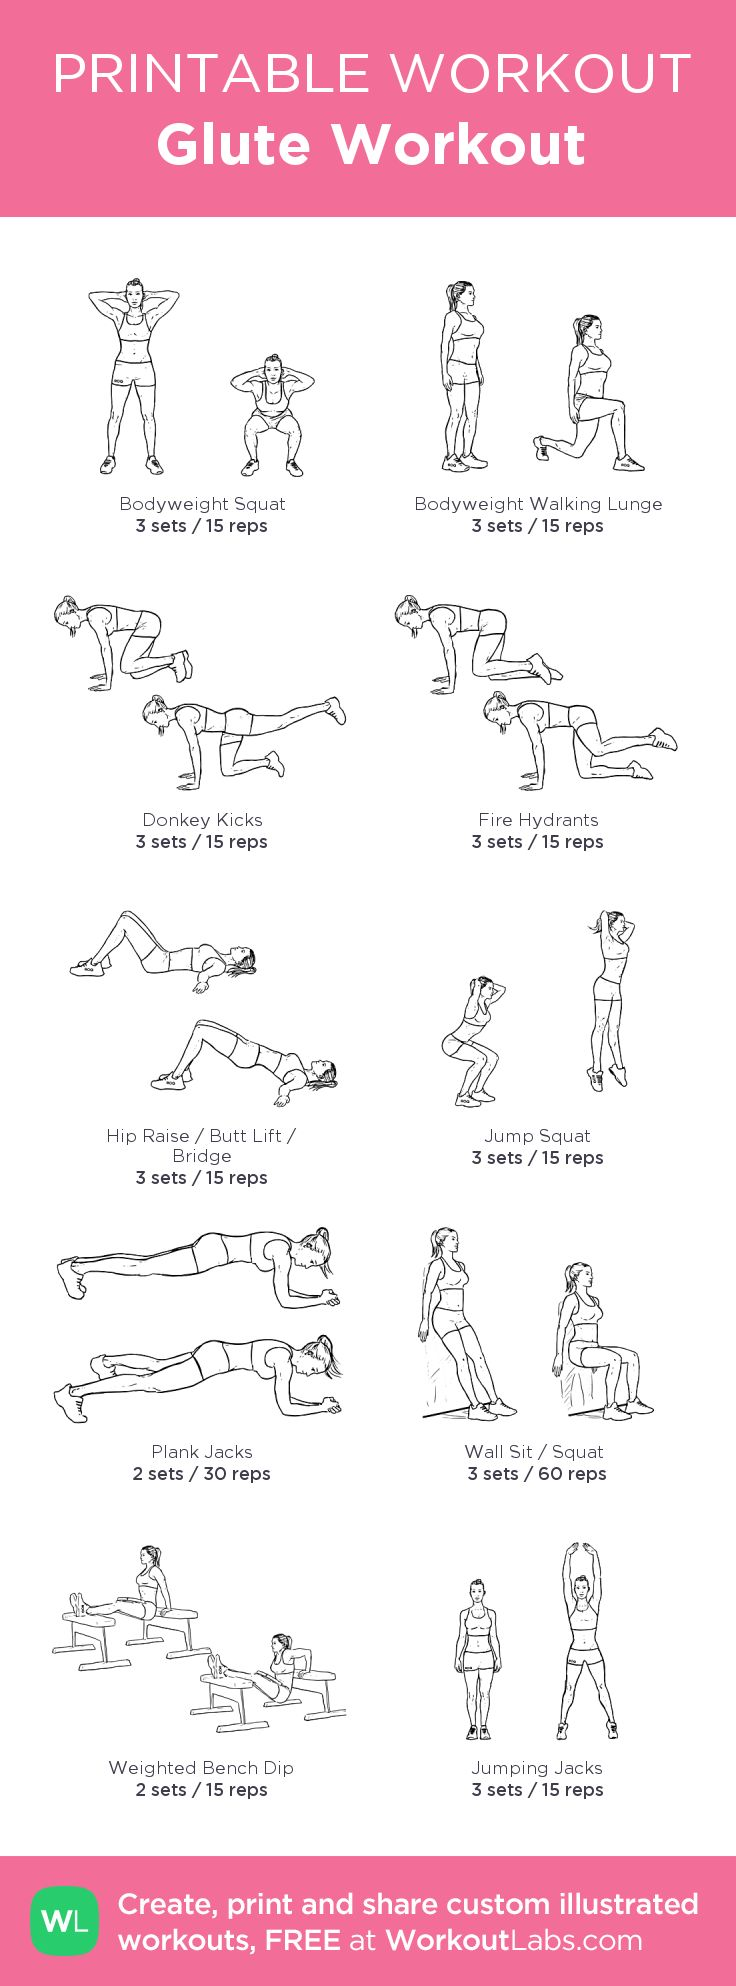 Pin on Glute Workout